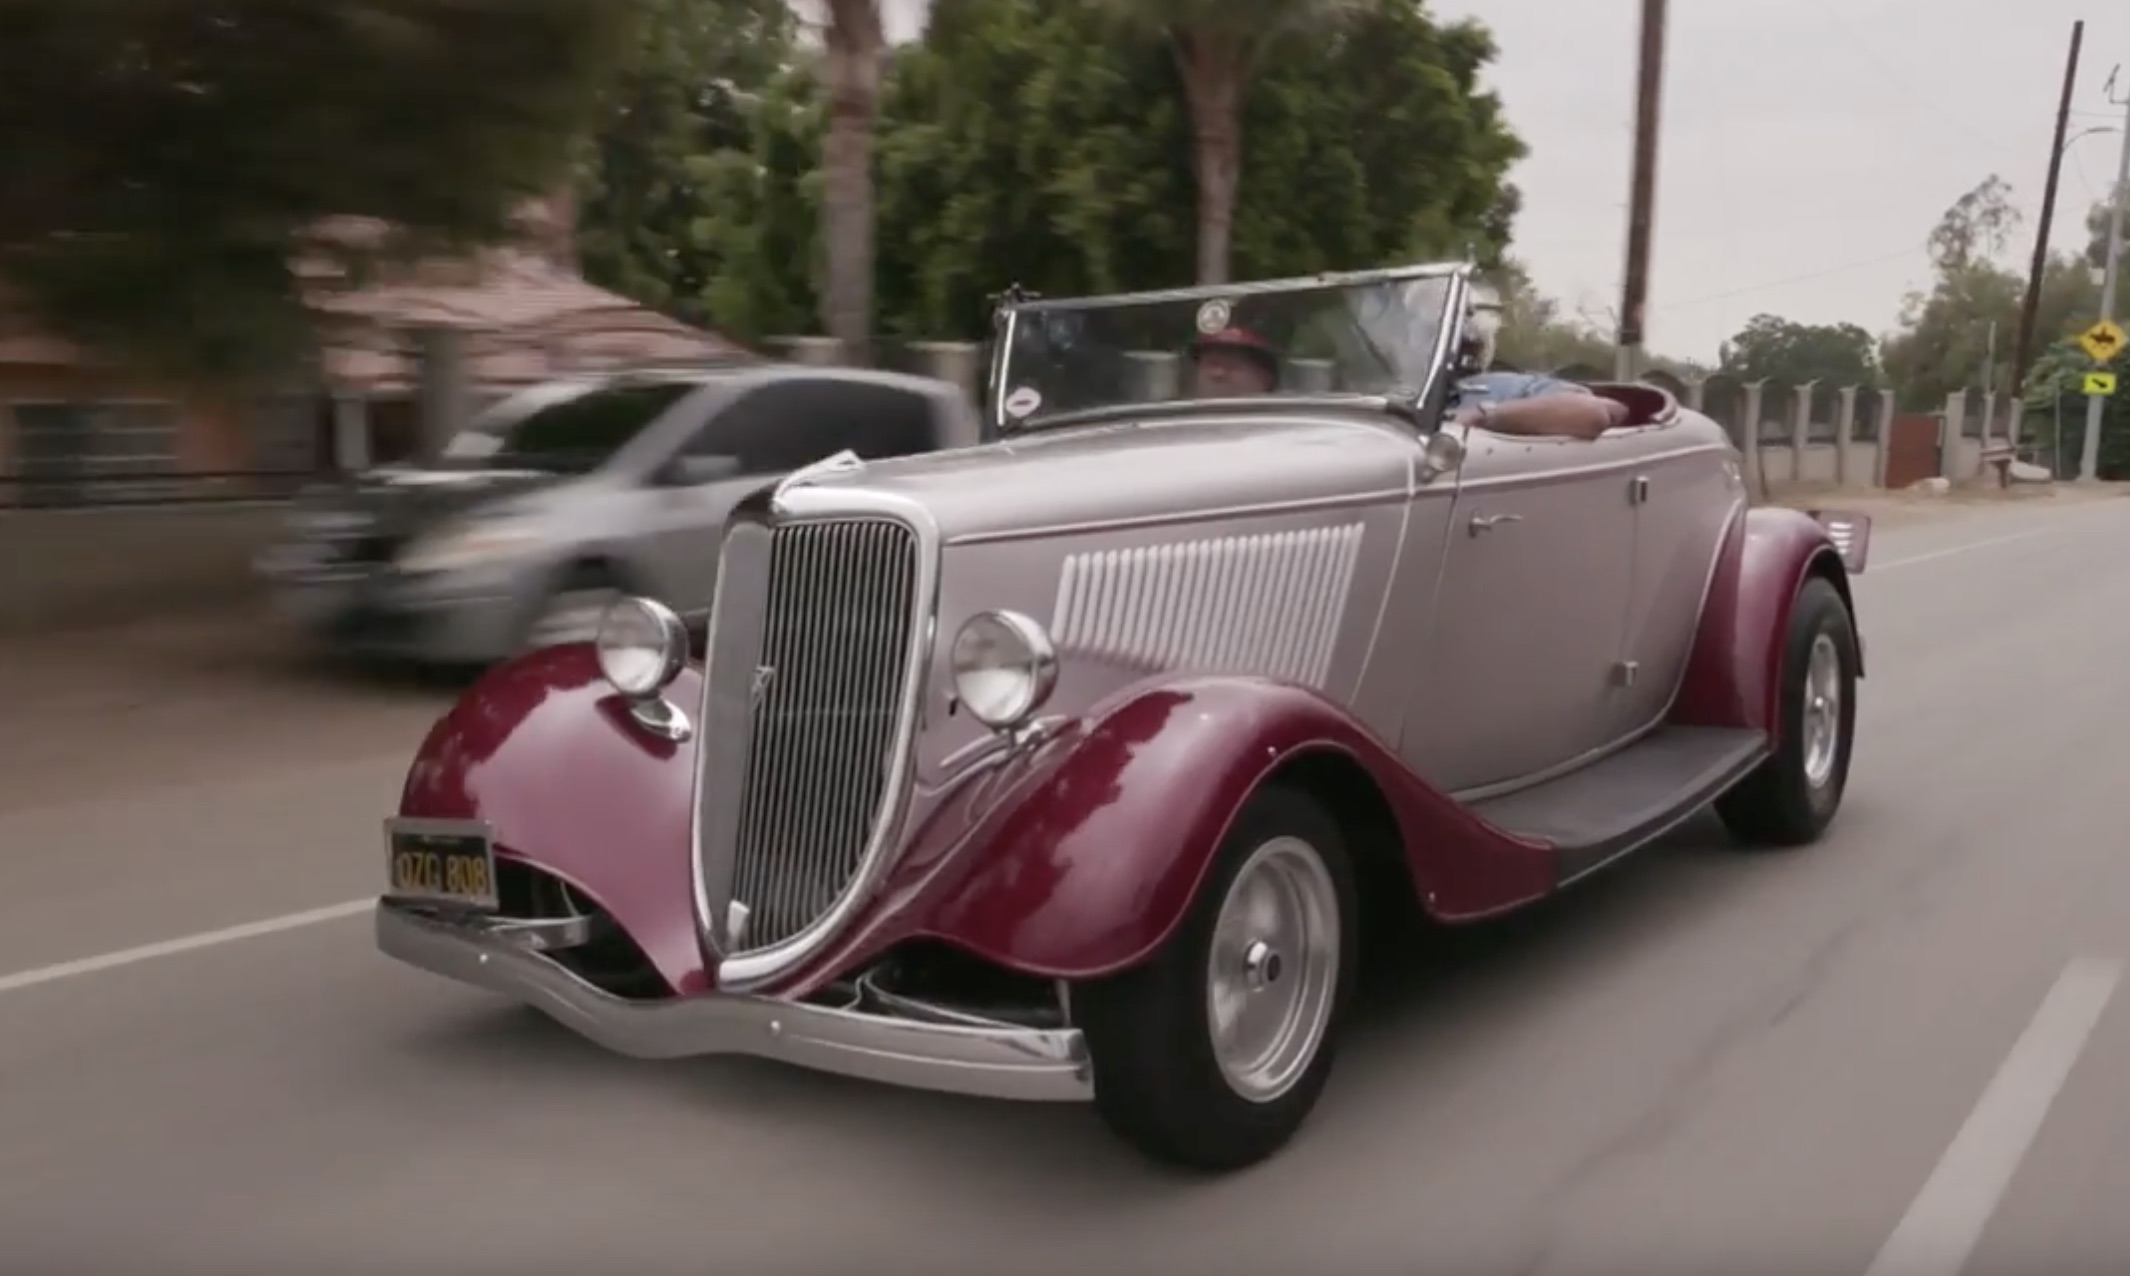 Can You Imagine Owning A Car Over Fifty Years? Check Out The Case Of This 1934 Ford!